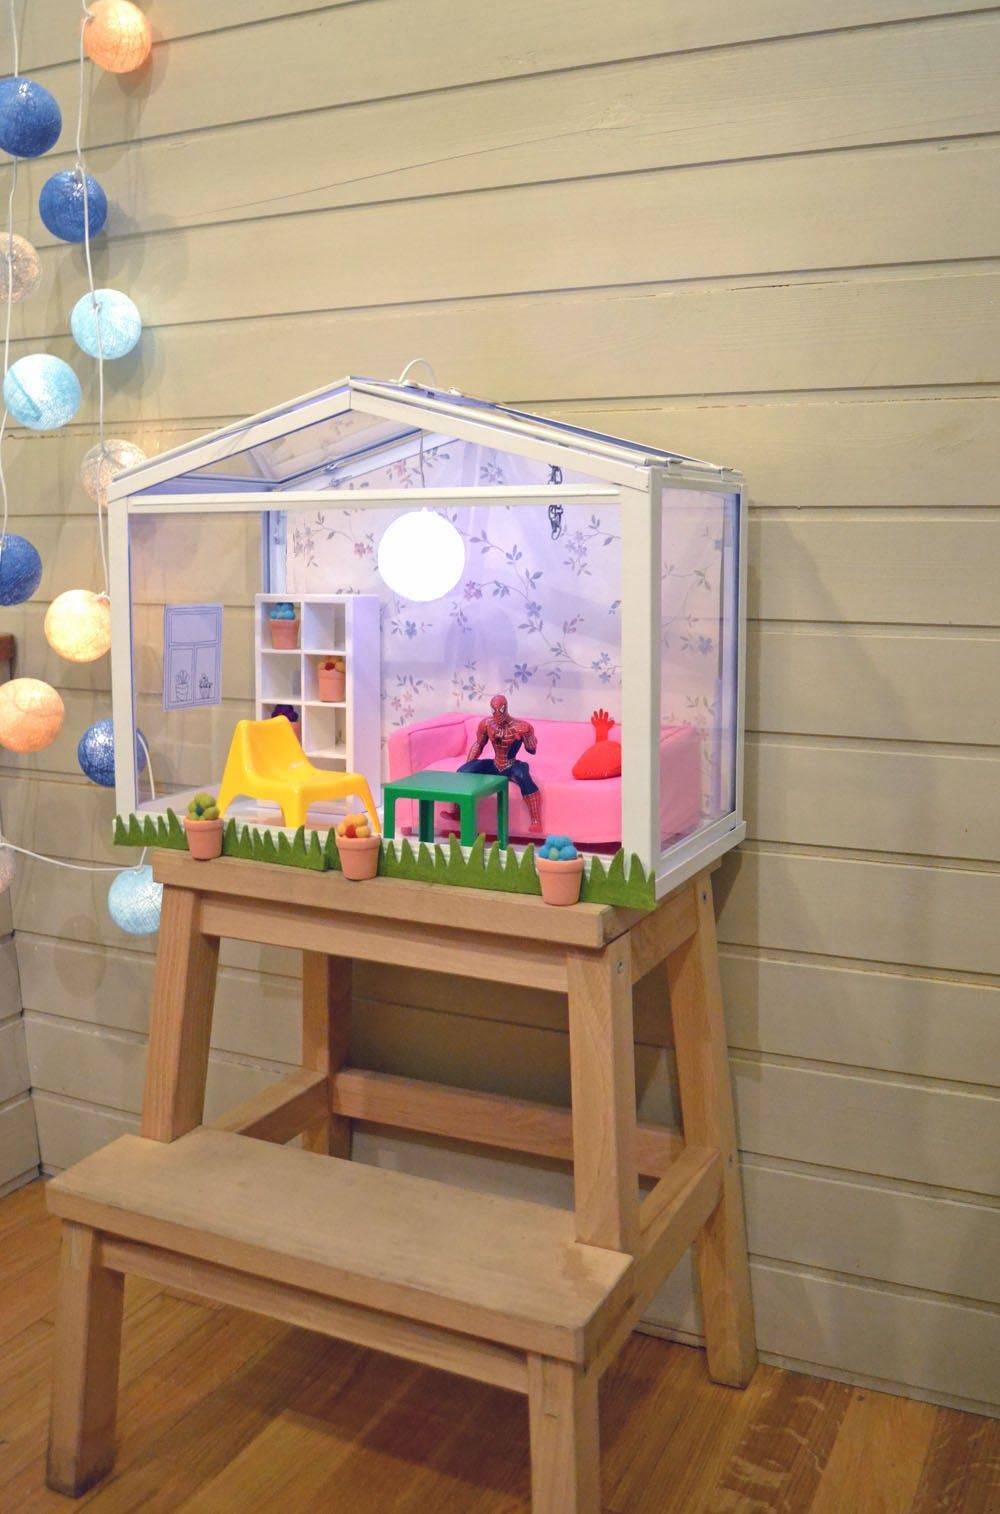 Ikea Socker greenhouse turned into a dollhouse. mommo design: IKEA HACKS